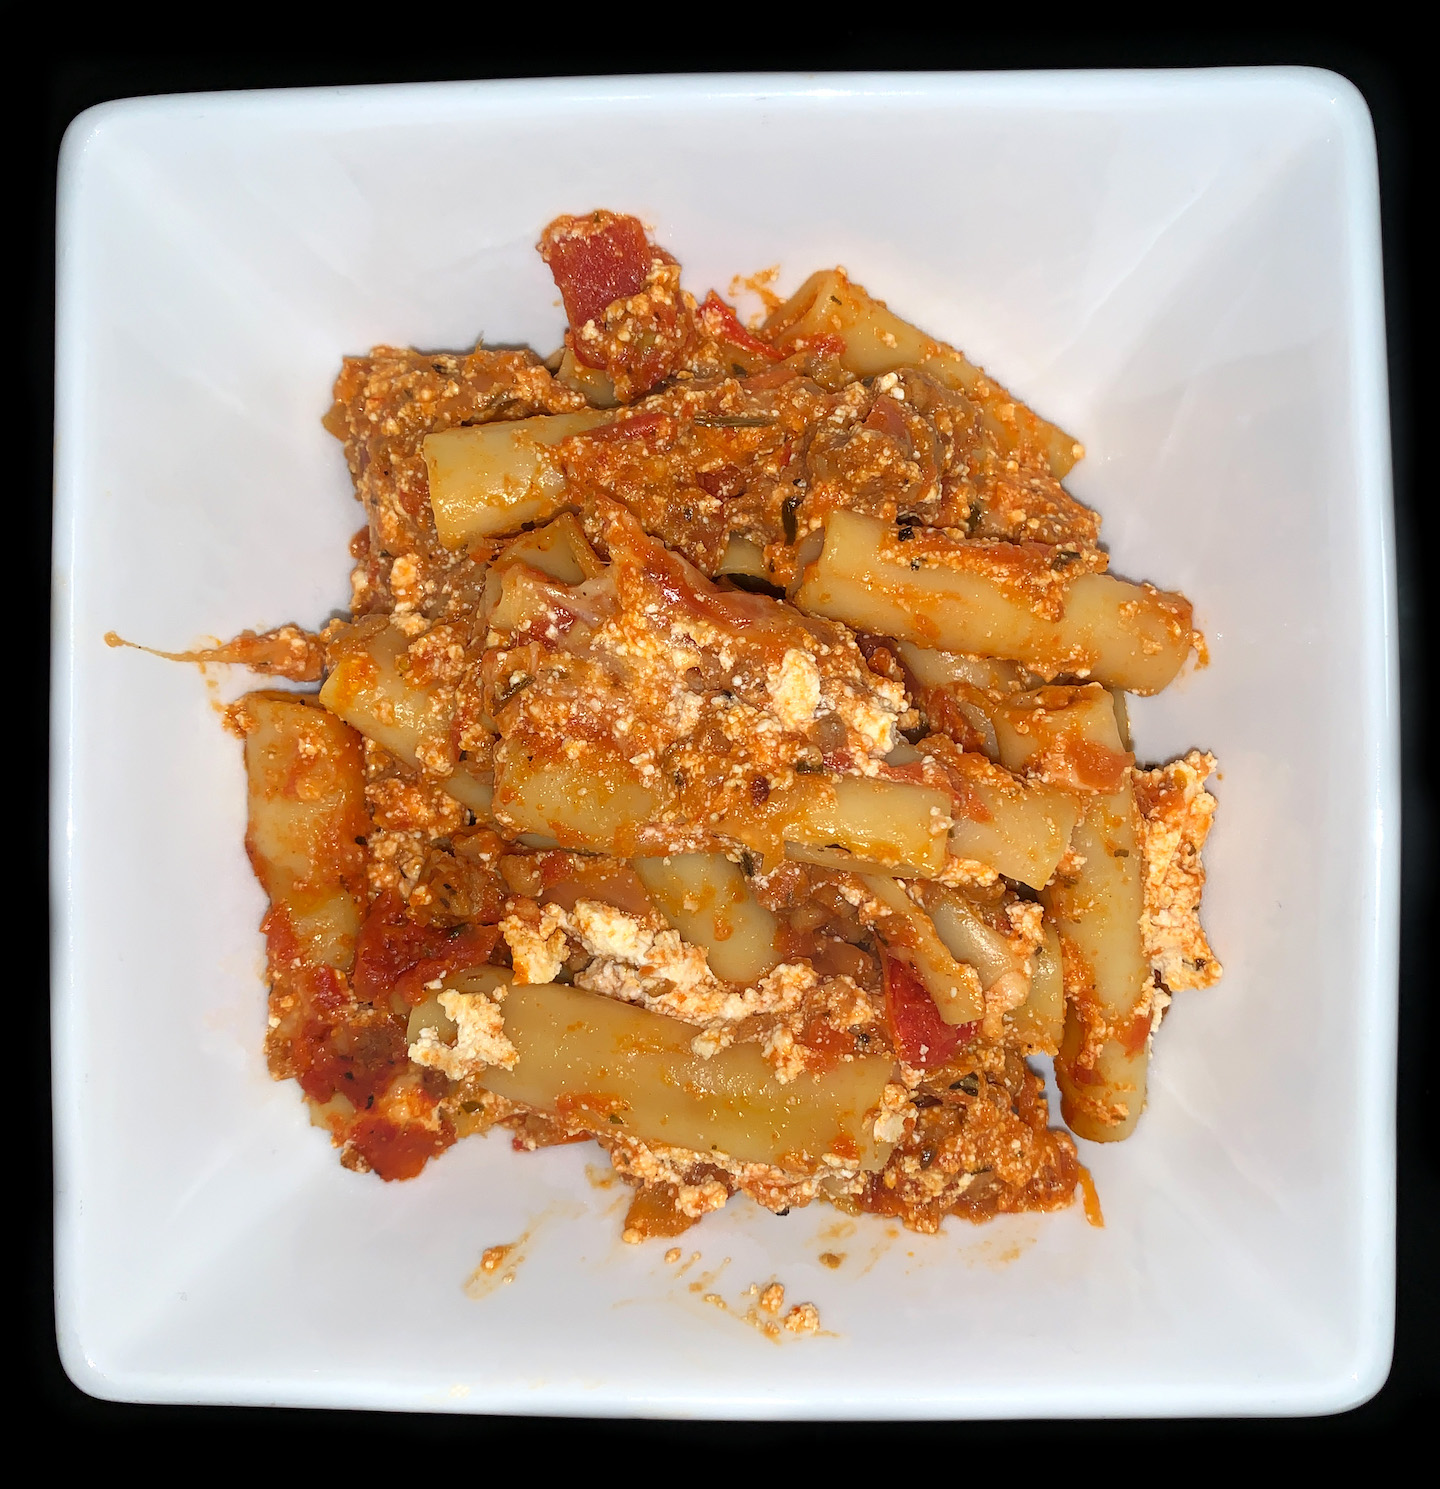 Baked Ziti with Beyond Beef